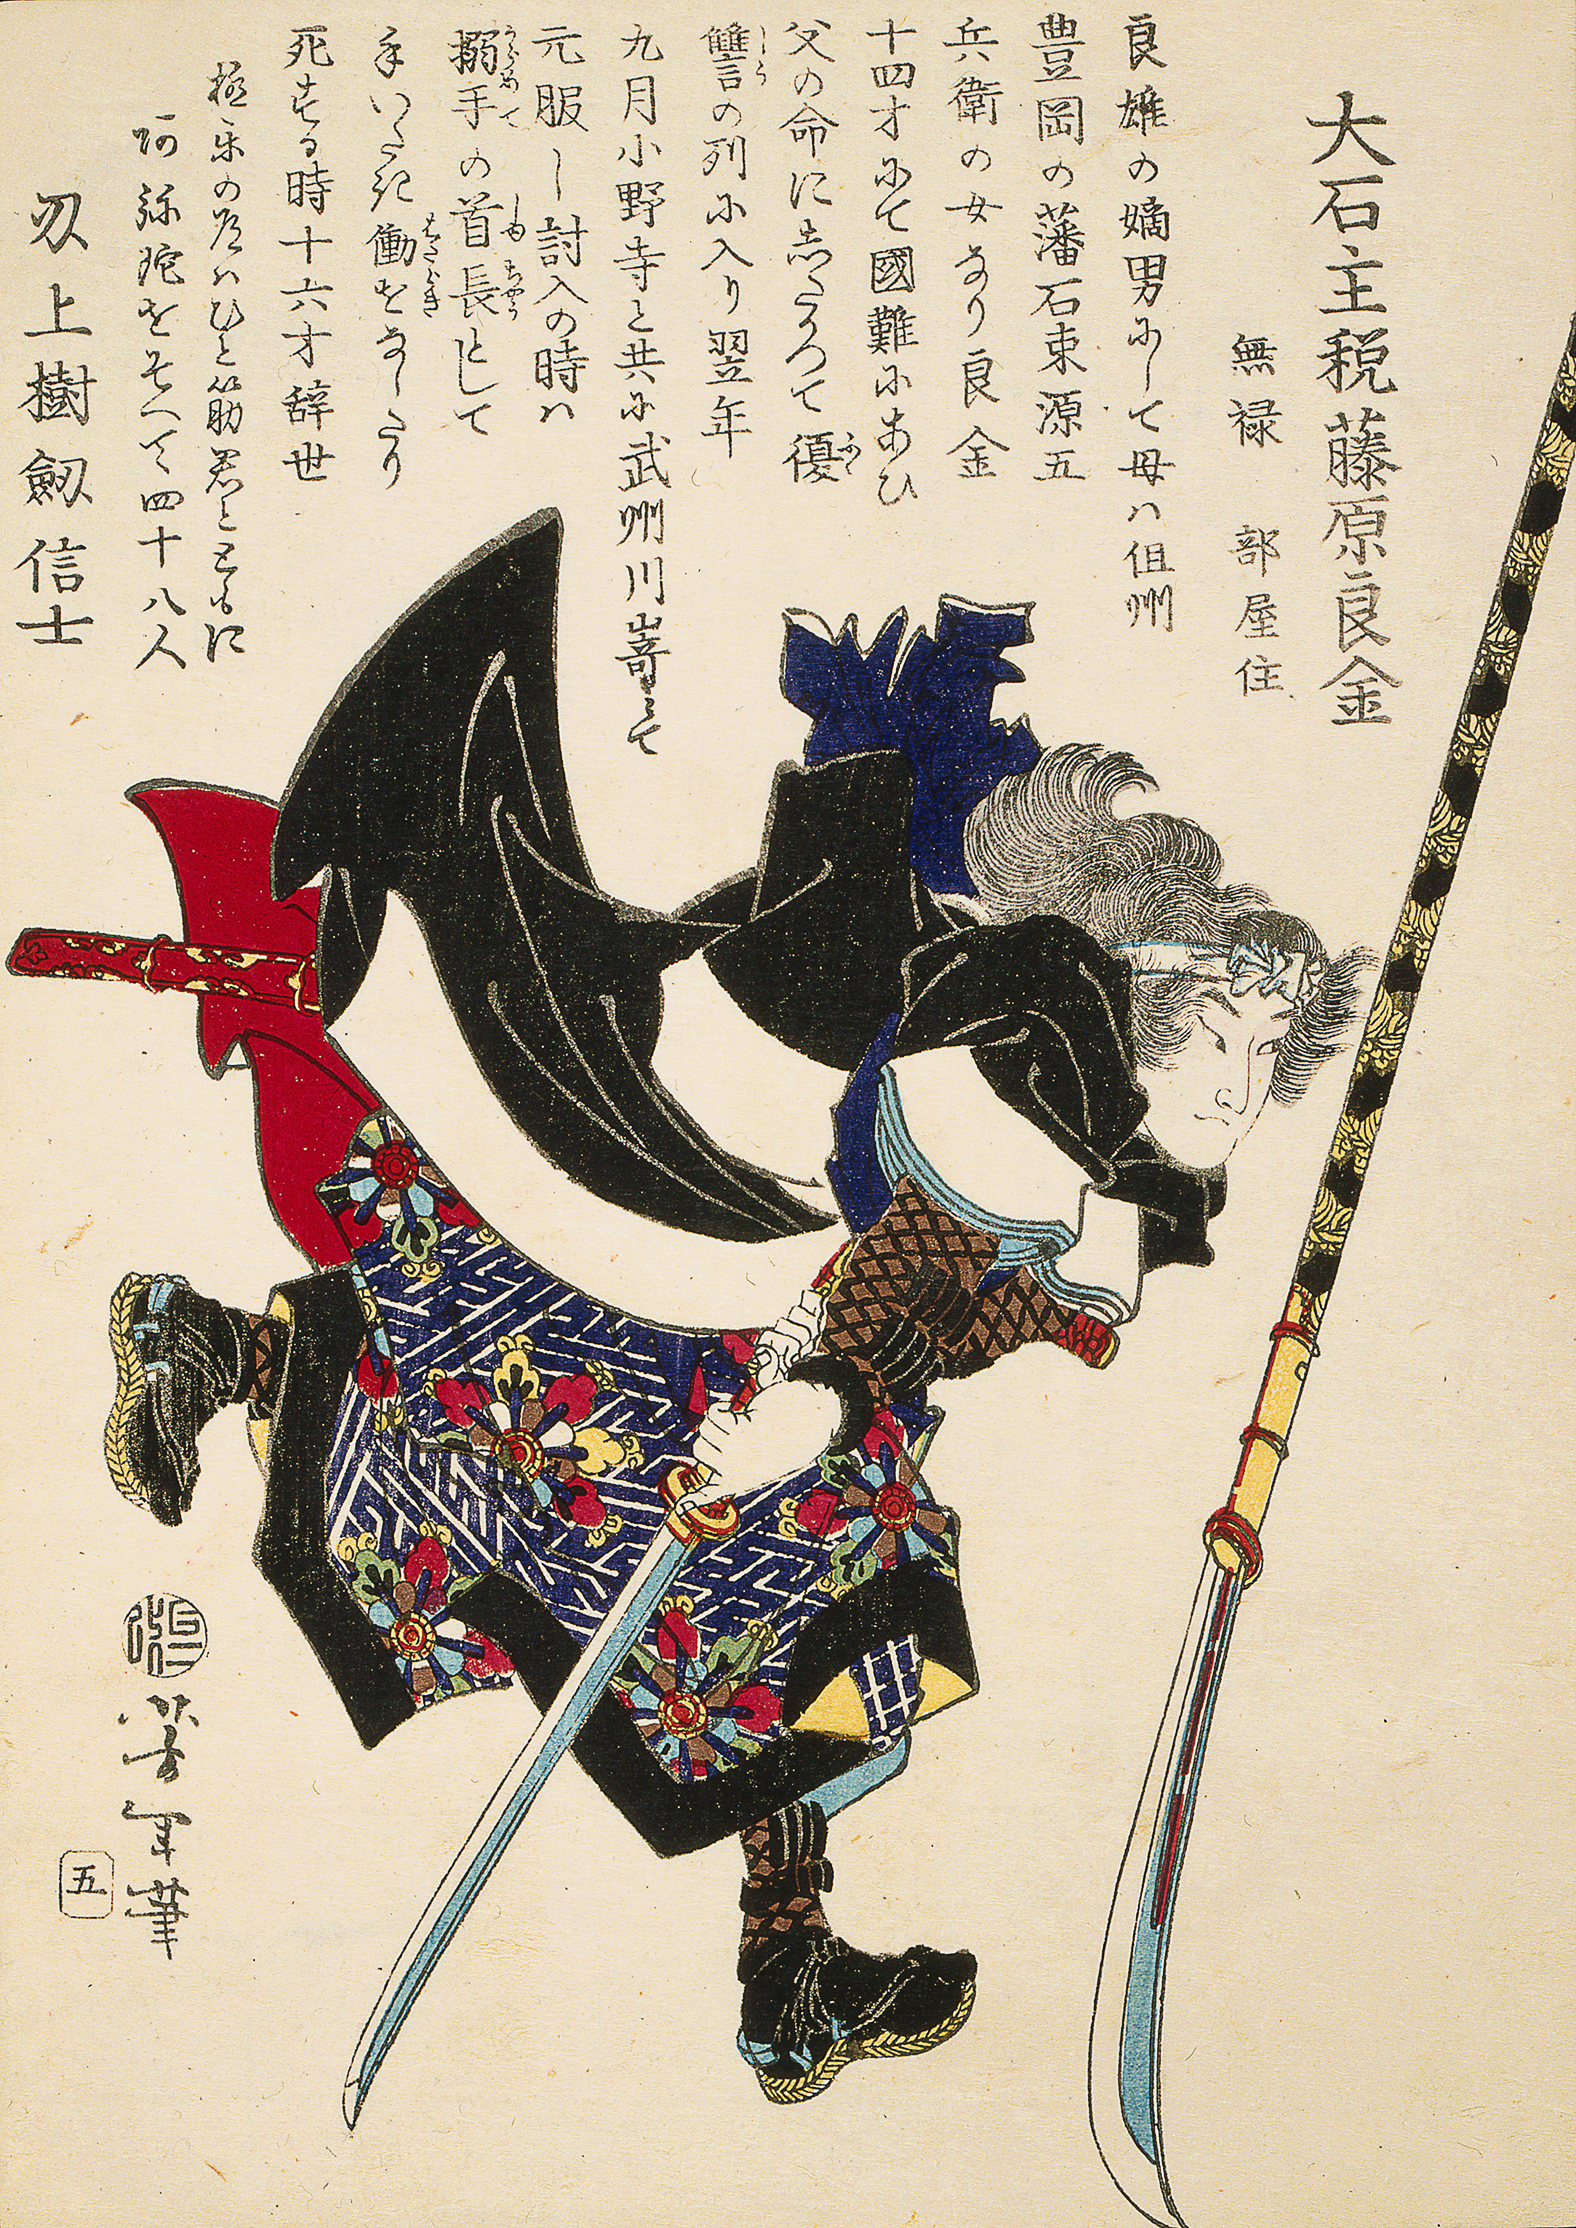 File:Ronin, or masterless Samurai, lunging forward.jpg ...